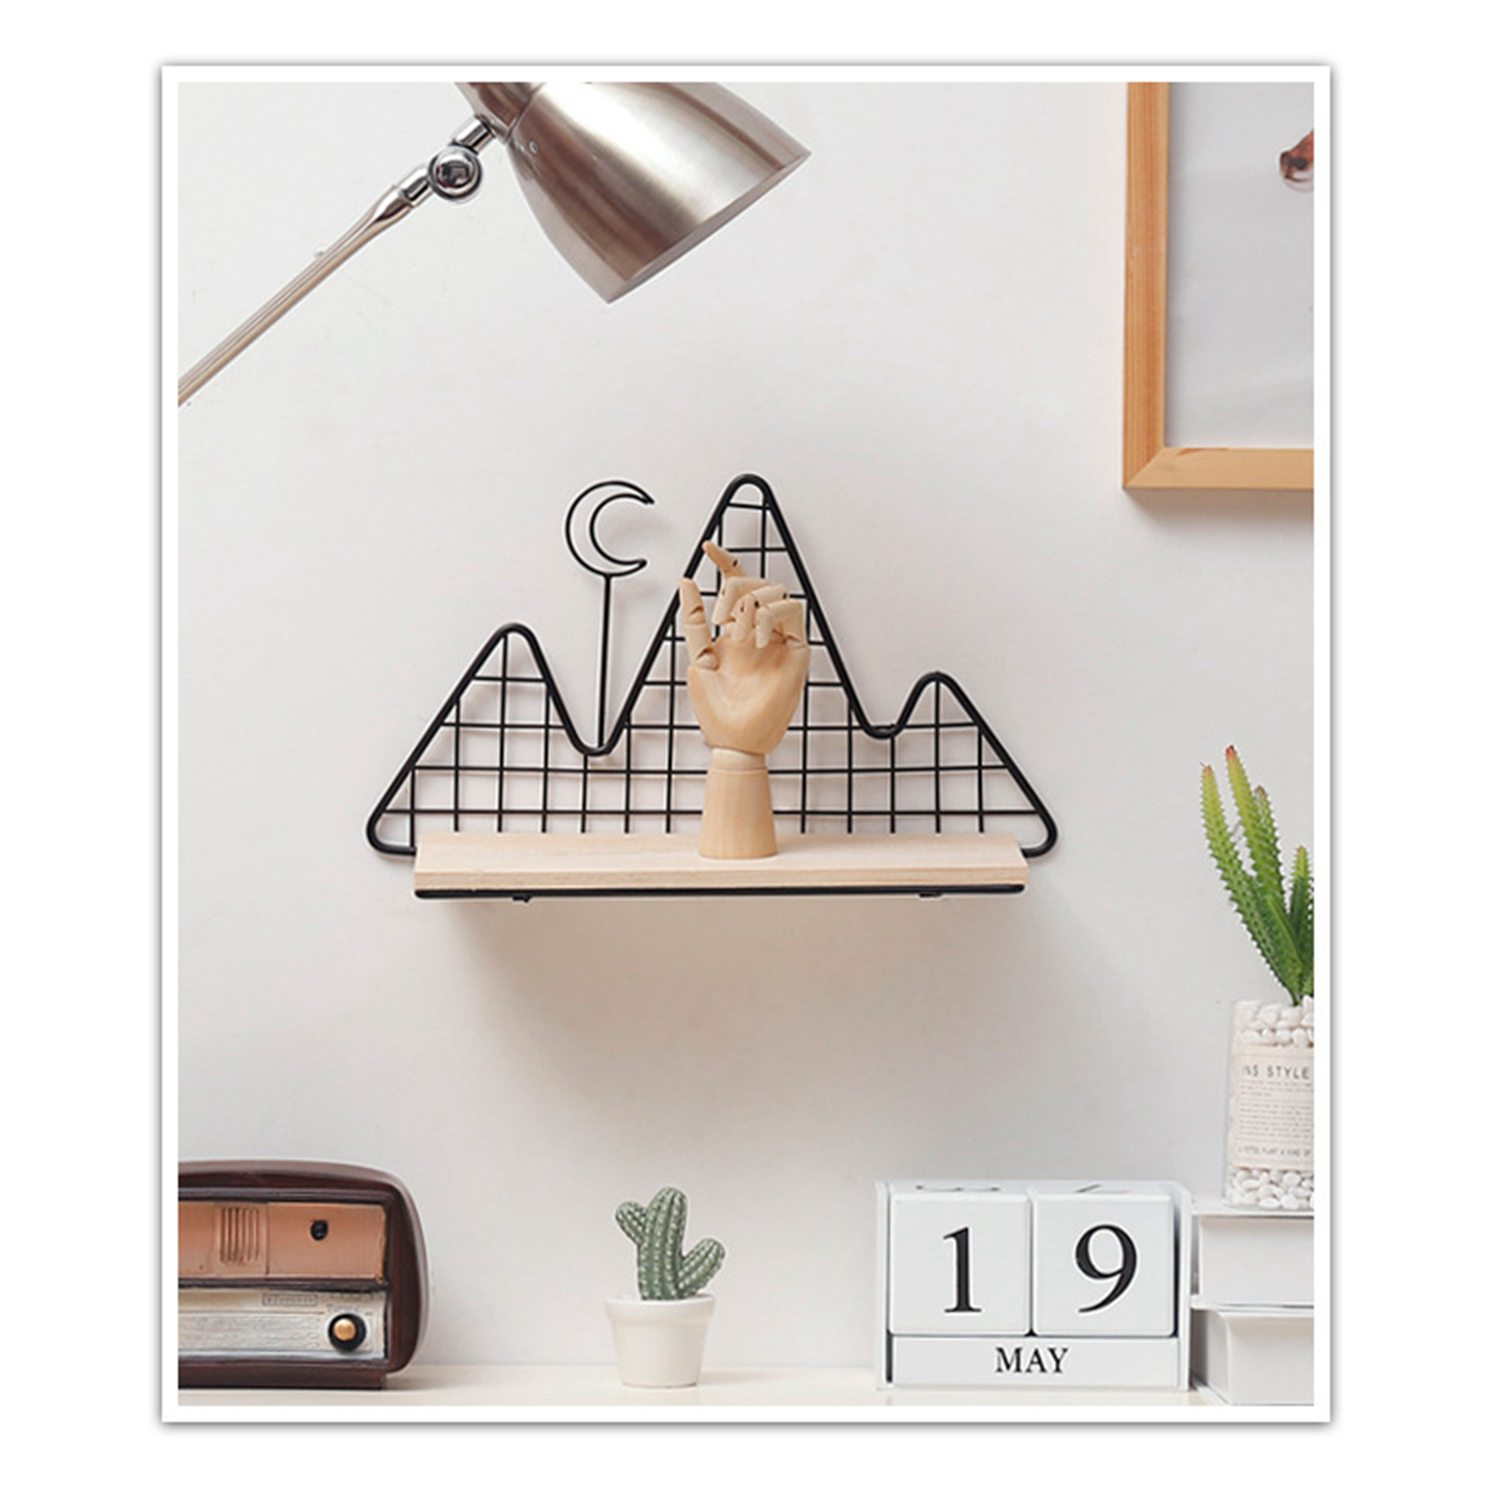 YHYS Nordic ins style room ornament geometric wrought iron wall bedroom creative wall shelf